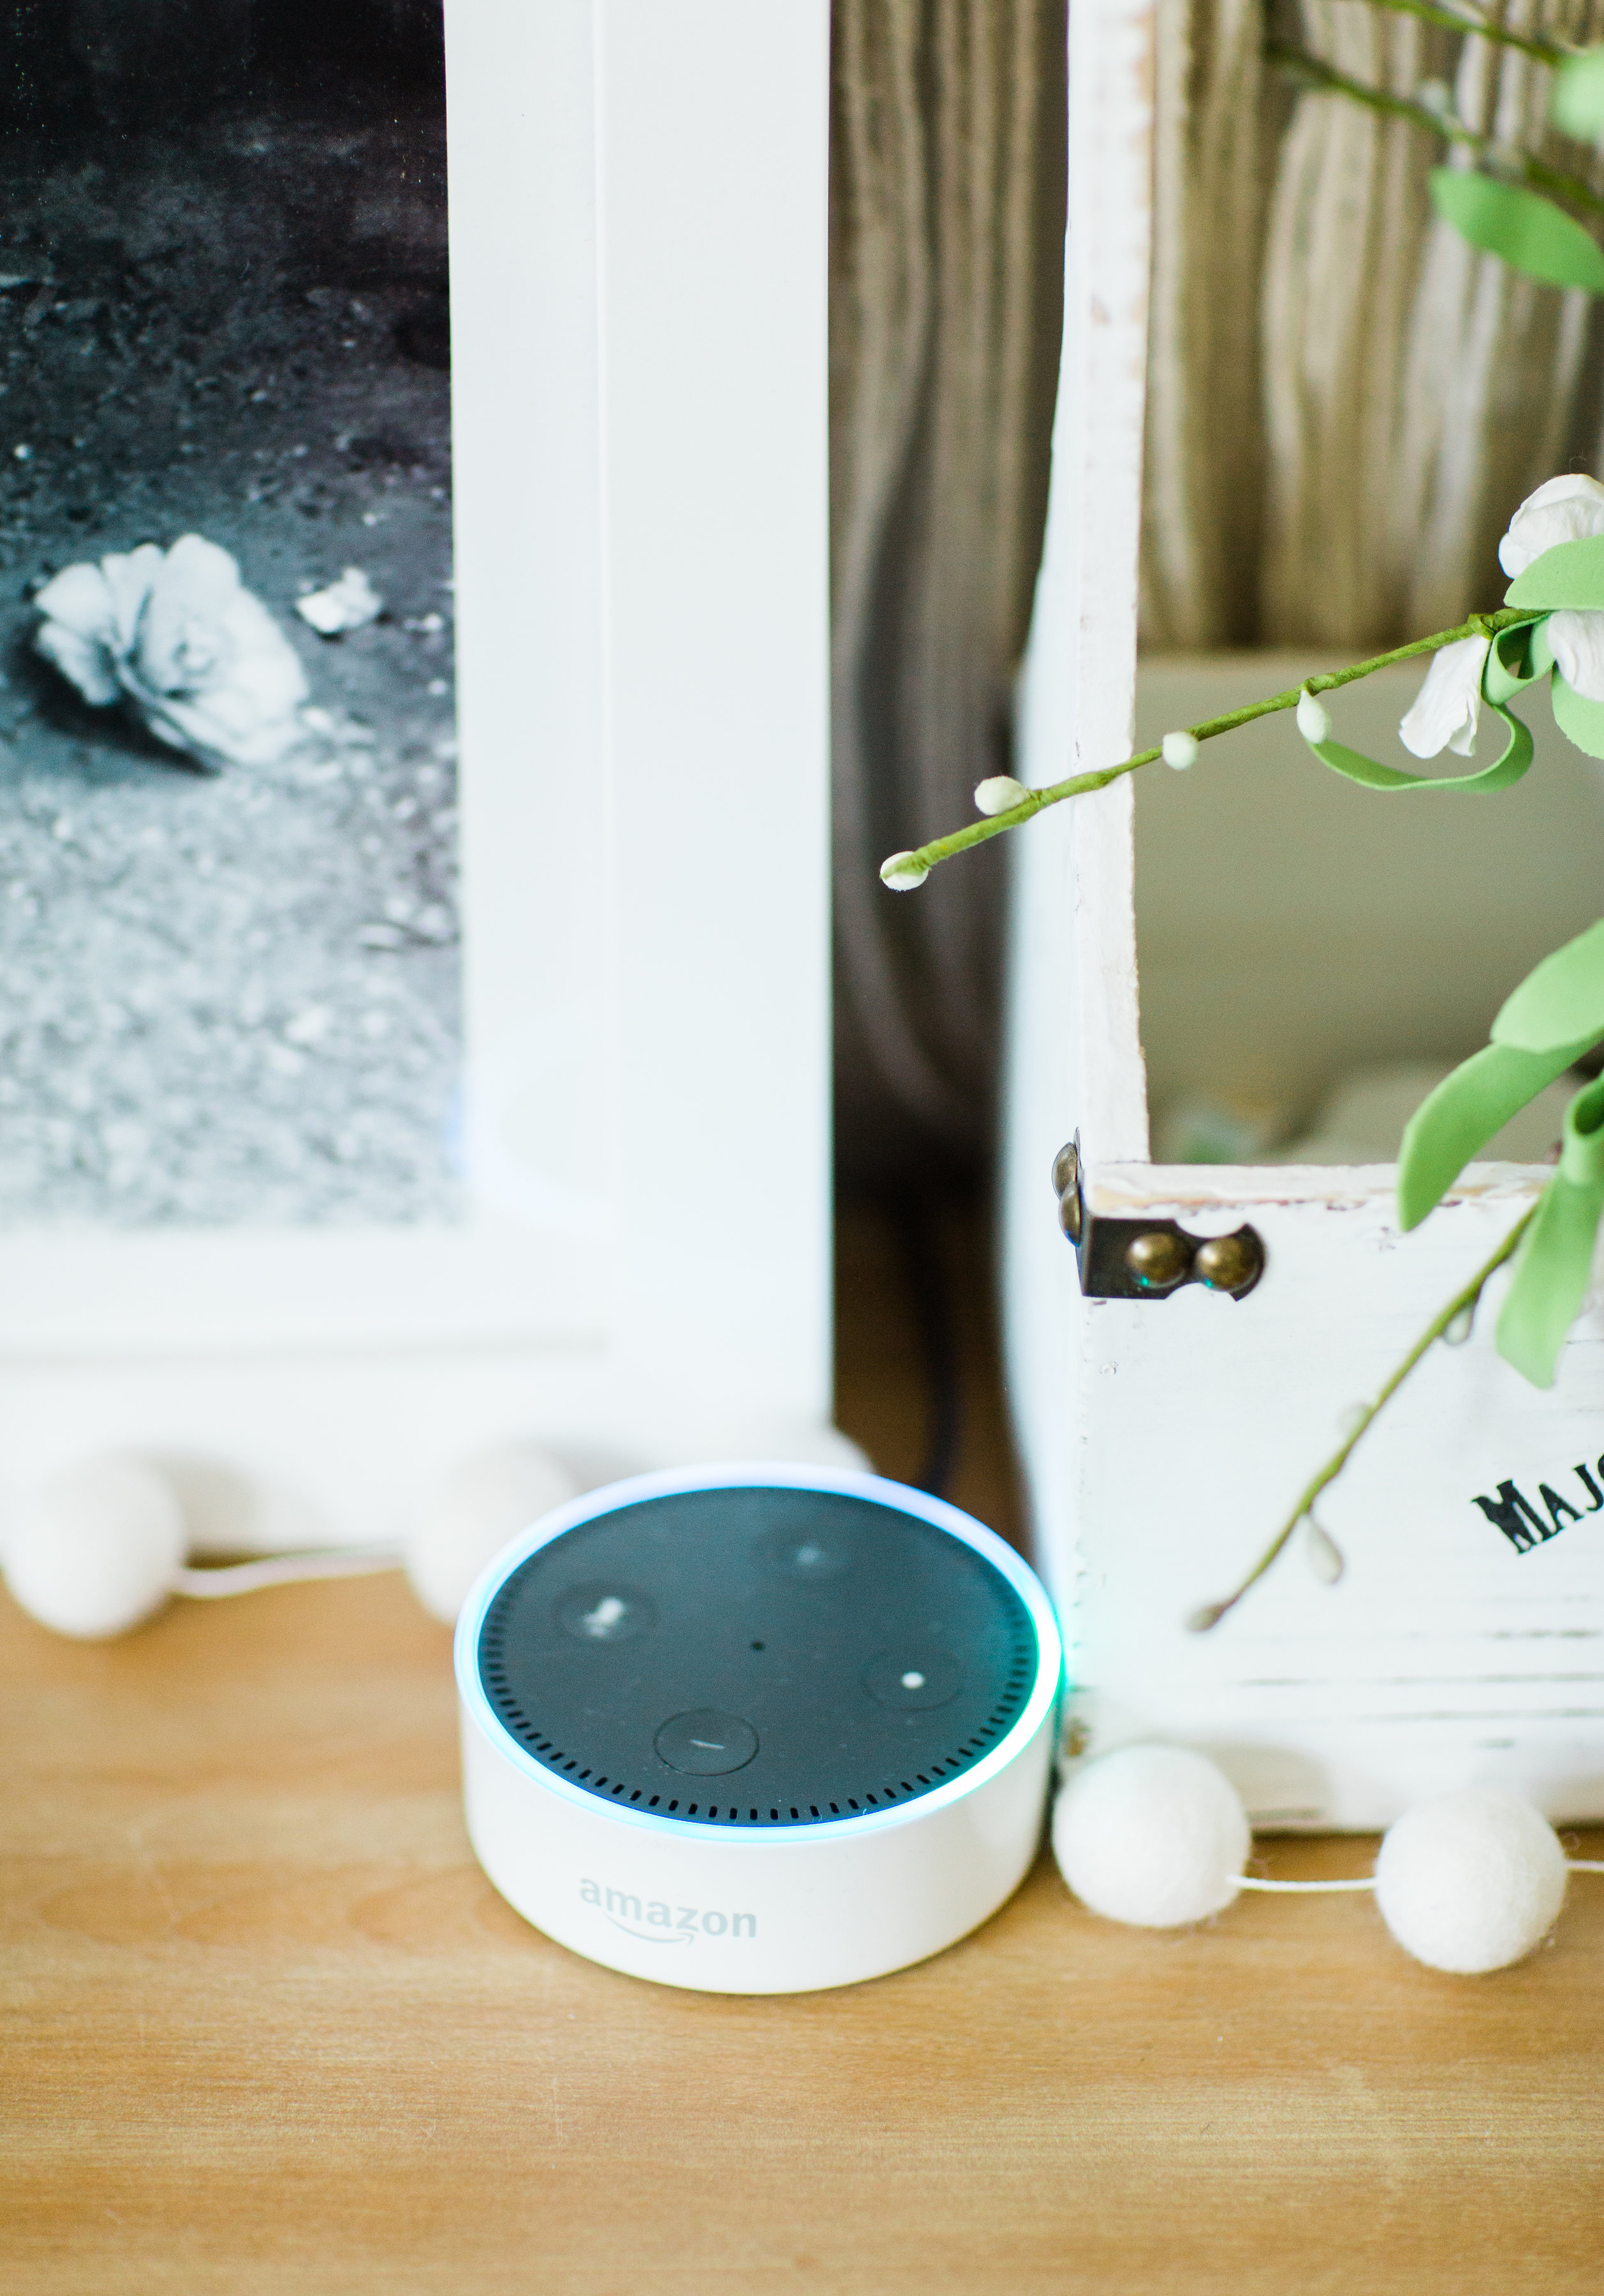 Not sure how to make Alexa work for your family? We're sharing 15 surprising and amazing ways Amazon Echo makes your life easier as a mom, including a brilliant new baby hack and tons of fun for the kids. | glitterinc.com | @glitterinc - Amazon Echo Review featured by popular North Carolina lifestyle blogger, Glitter, Inc.